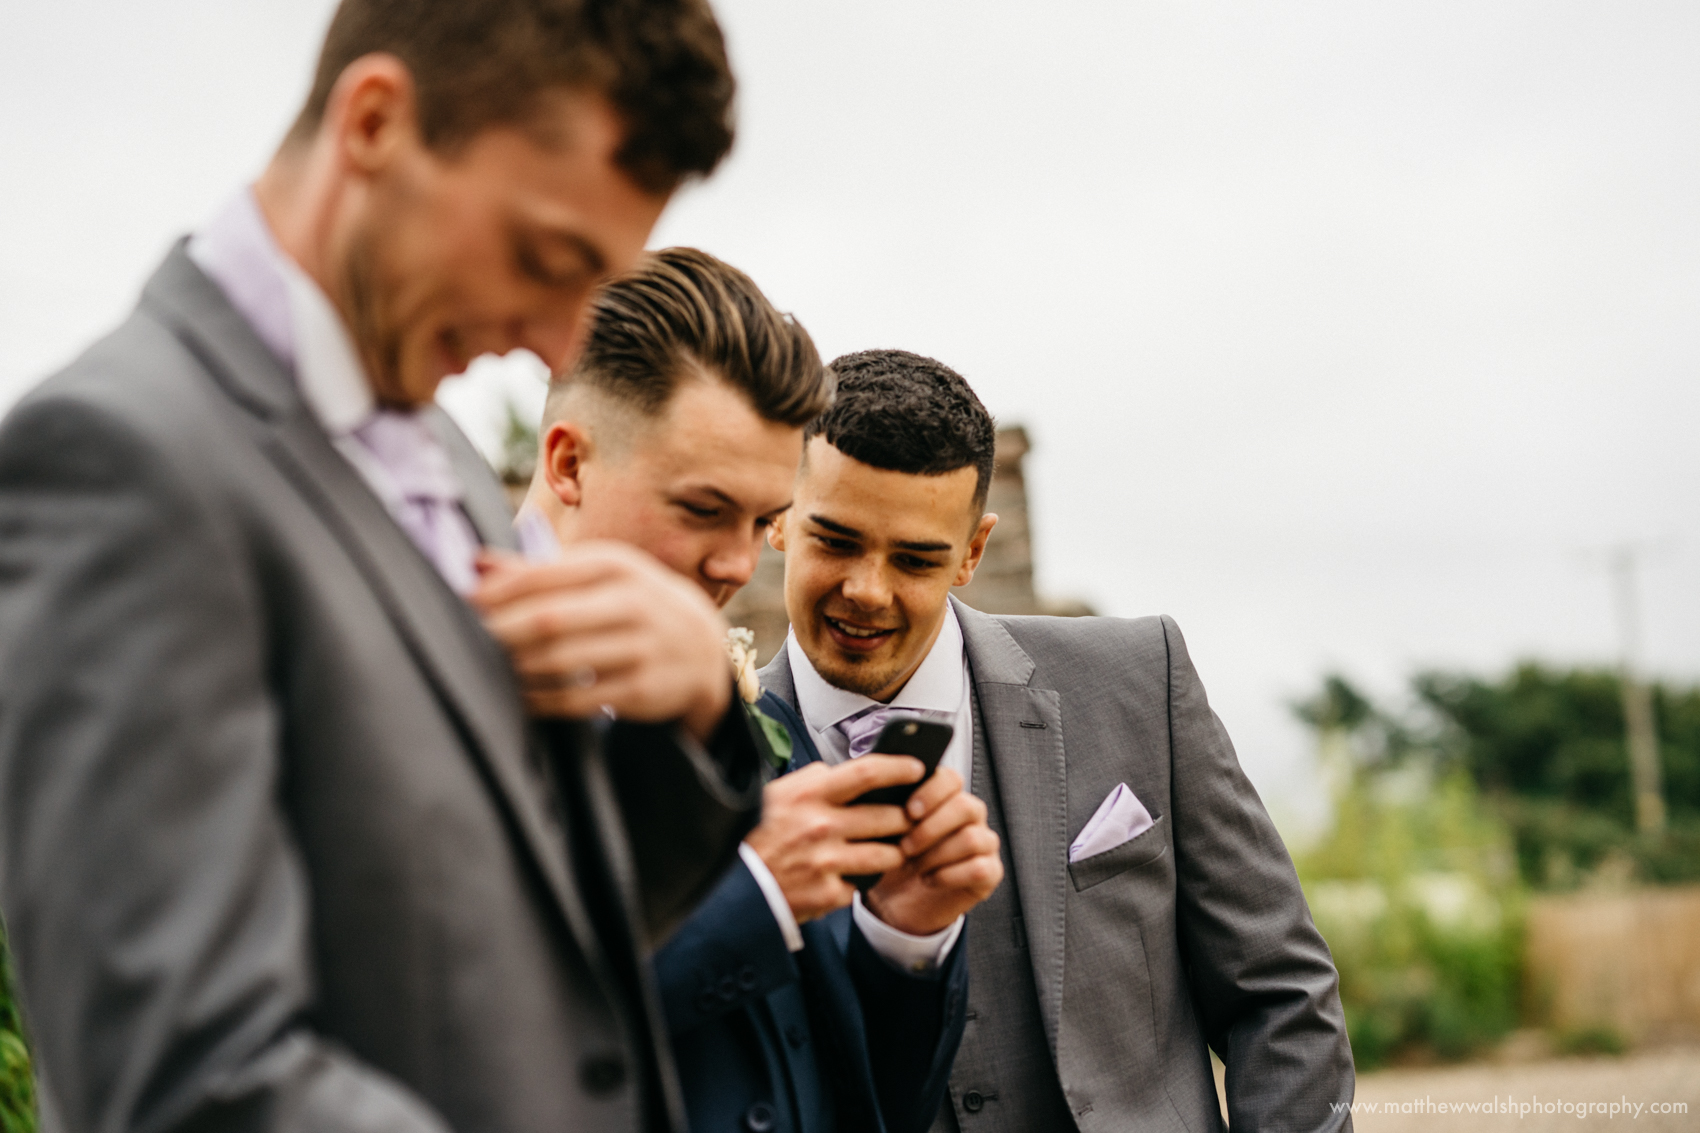 A photograph taken of the Grooms party looking at a mobile phone